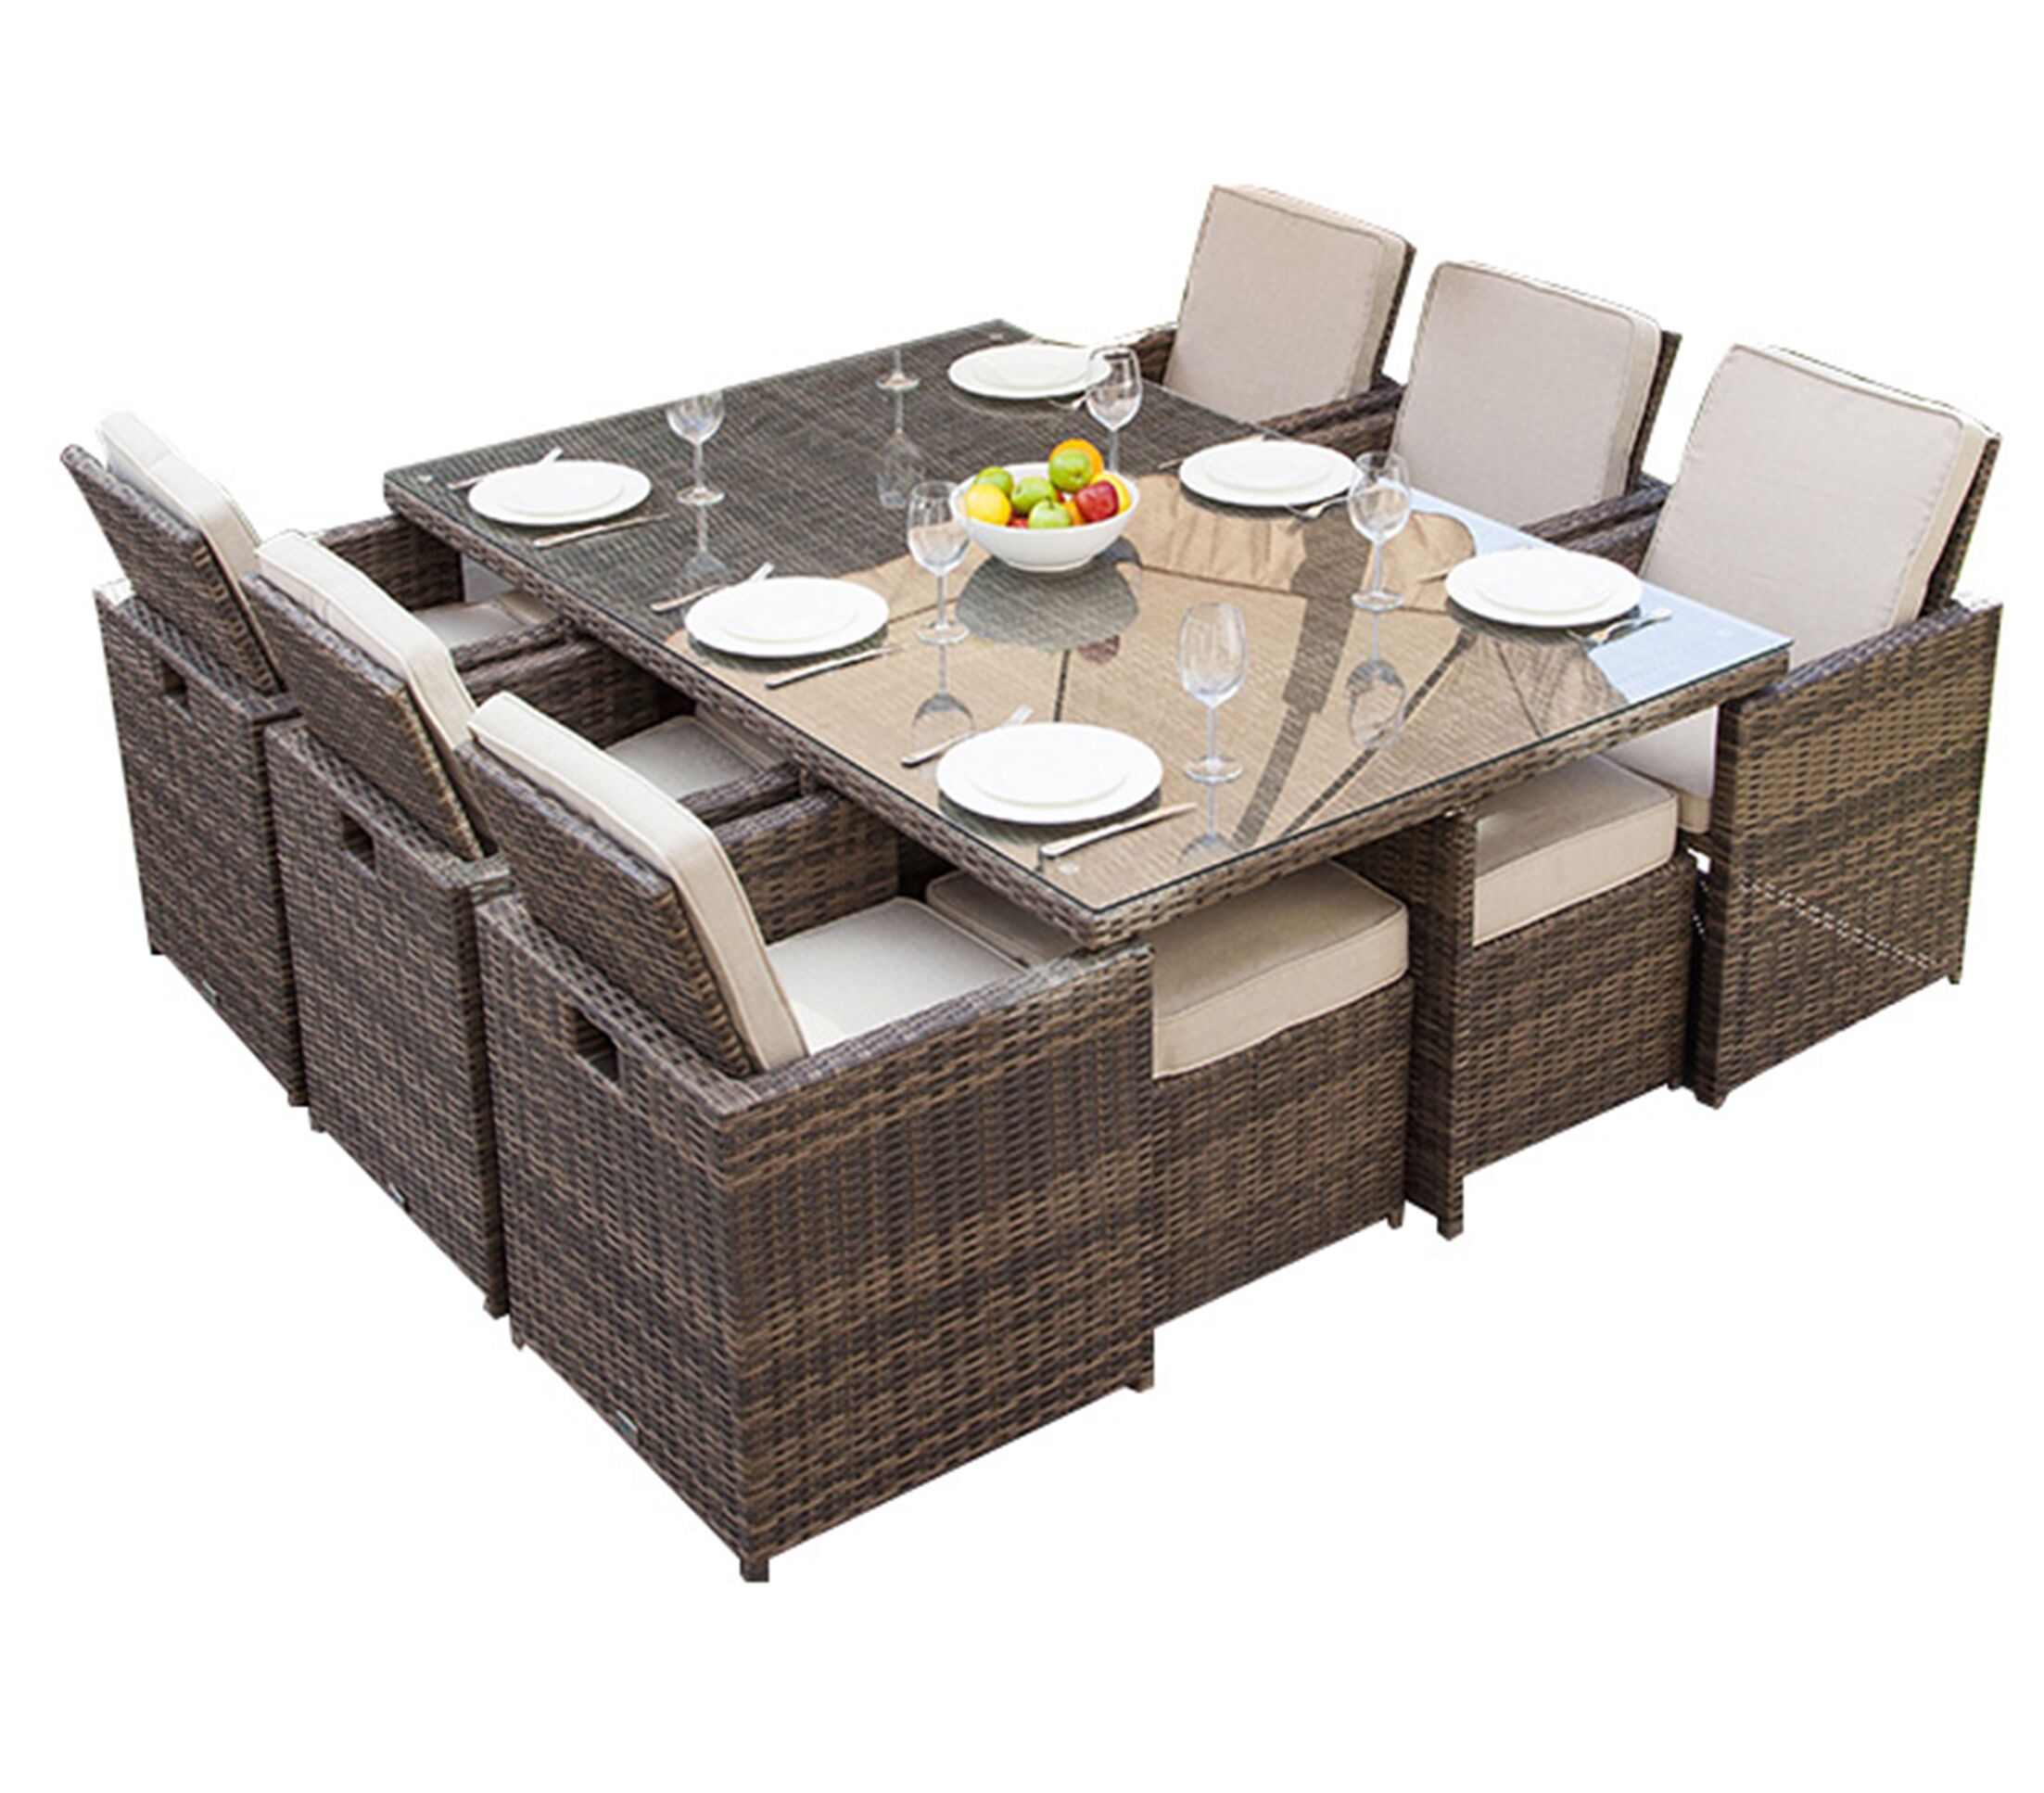 Leela 11 Piece Outdoor Patio Dining Set with Cushions